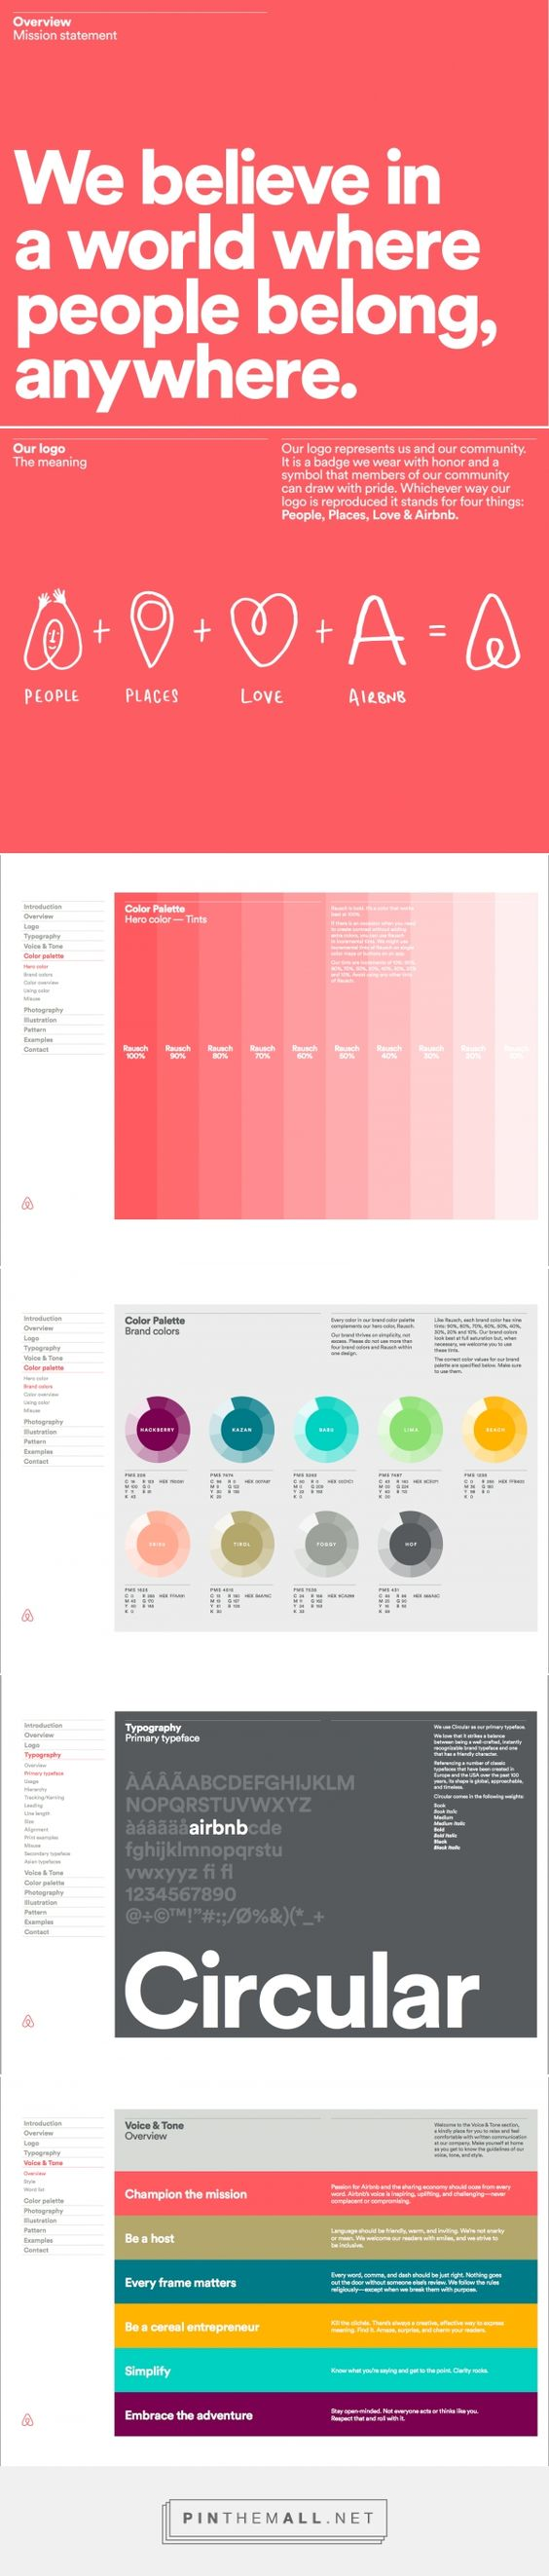 Design Practice: OUGD503: Airbnb Brand Guidelines - created via https://pinthemall.net